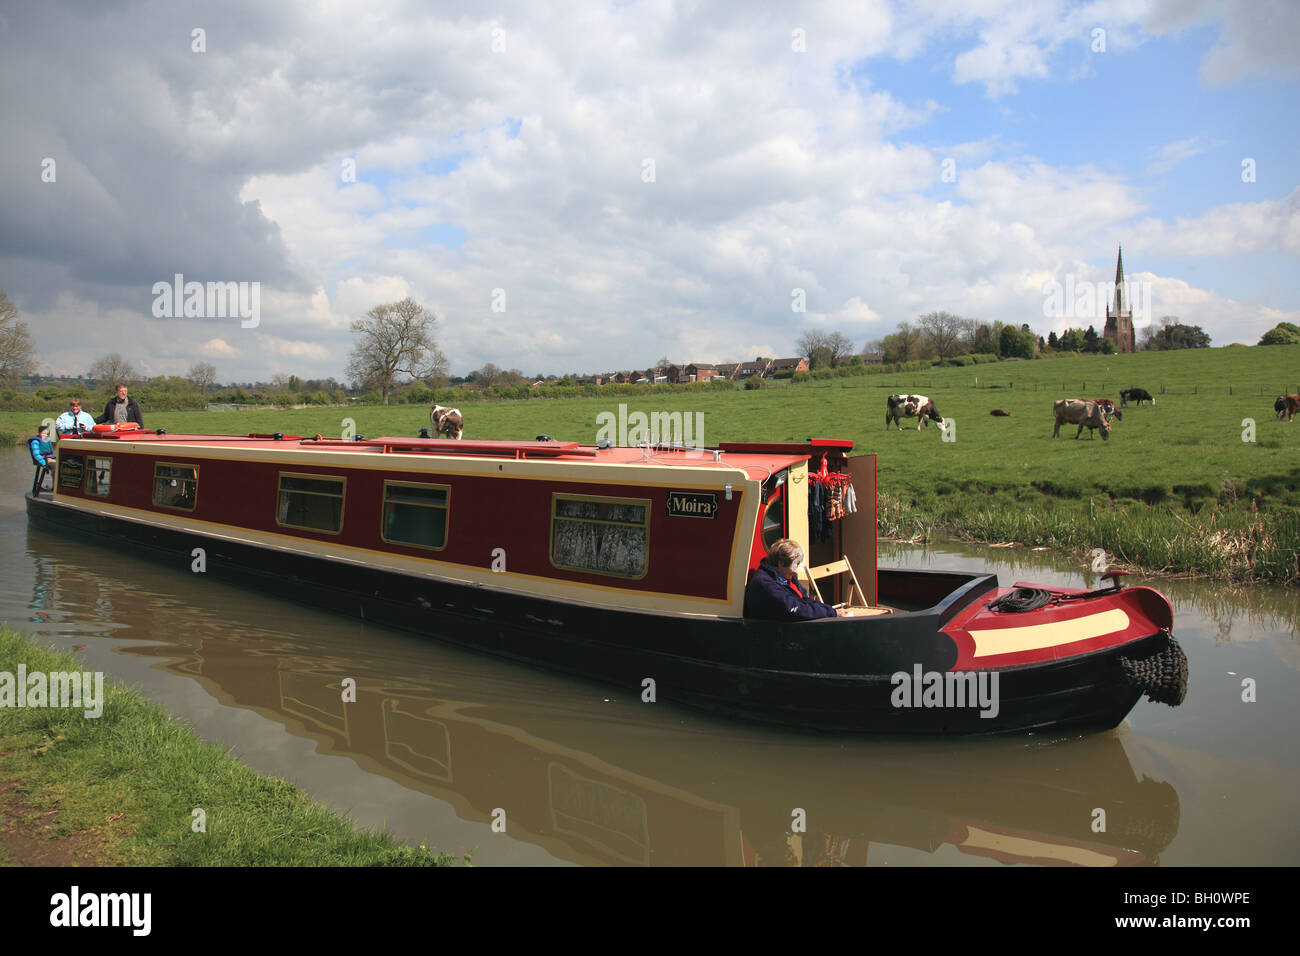 Holiday cruising on the Oxford Canal at Braunston, Northamptonshire in a hire boat from the Ashby Boat Company - Stock Image